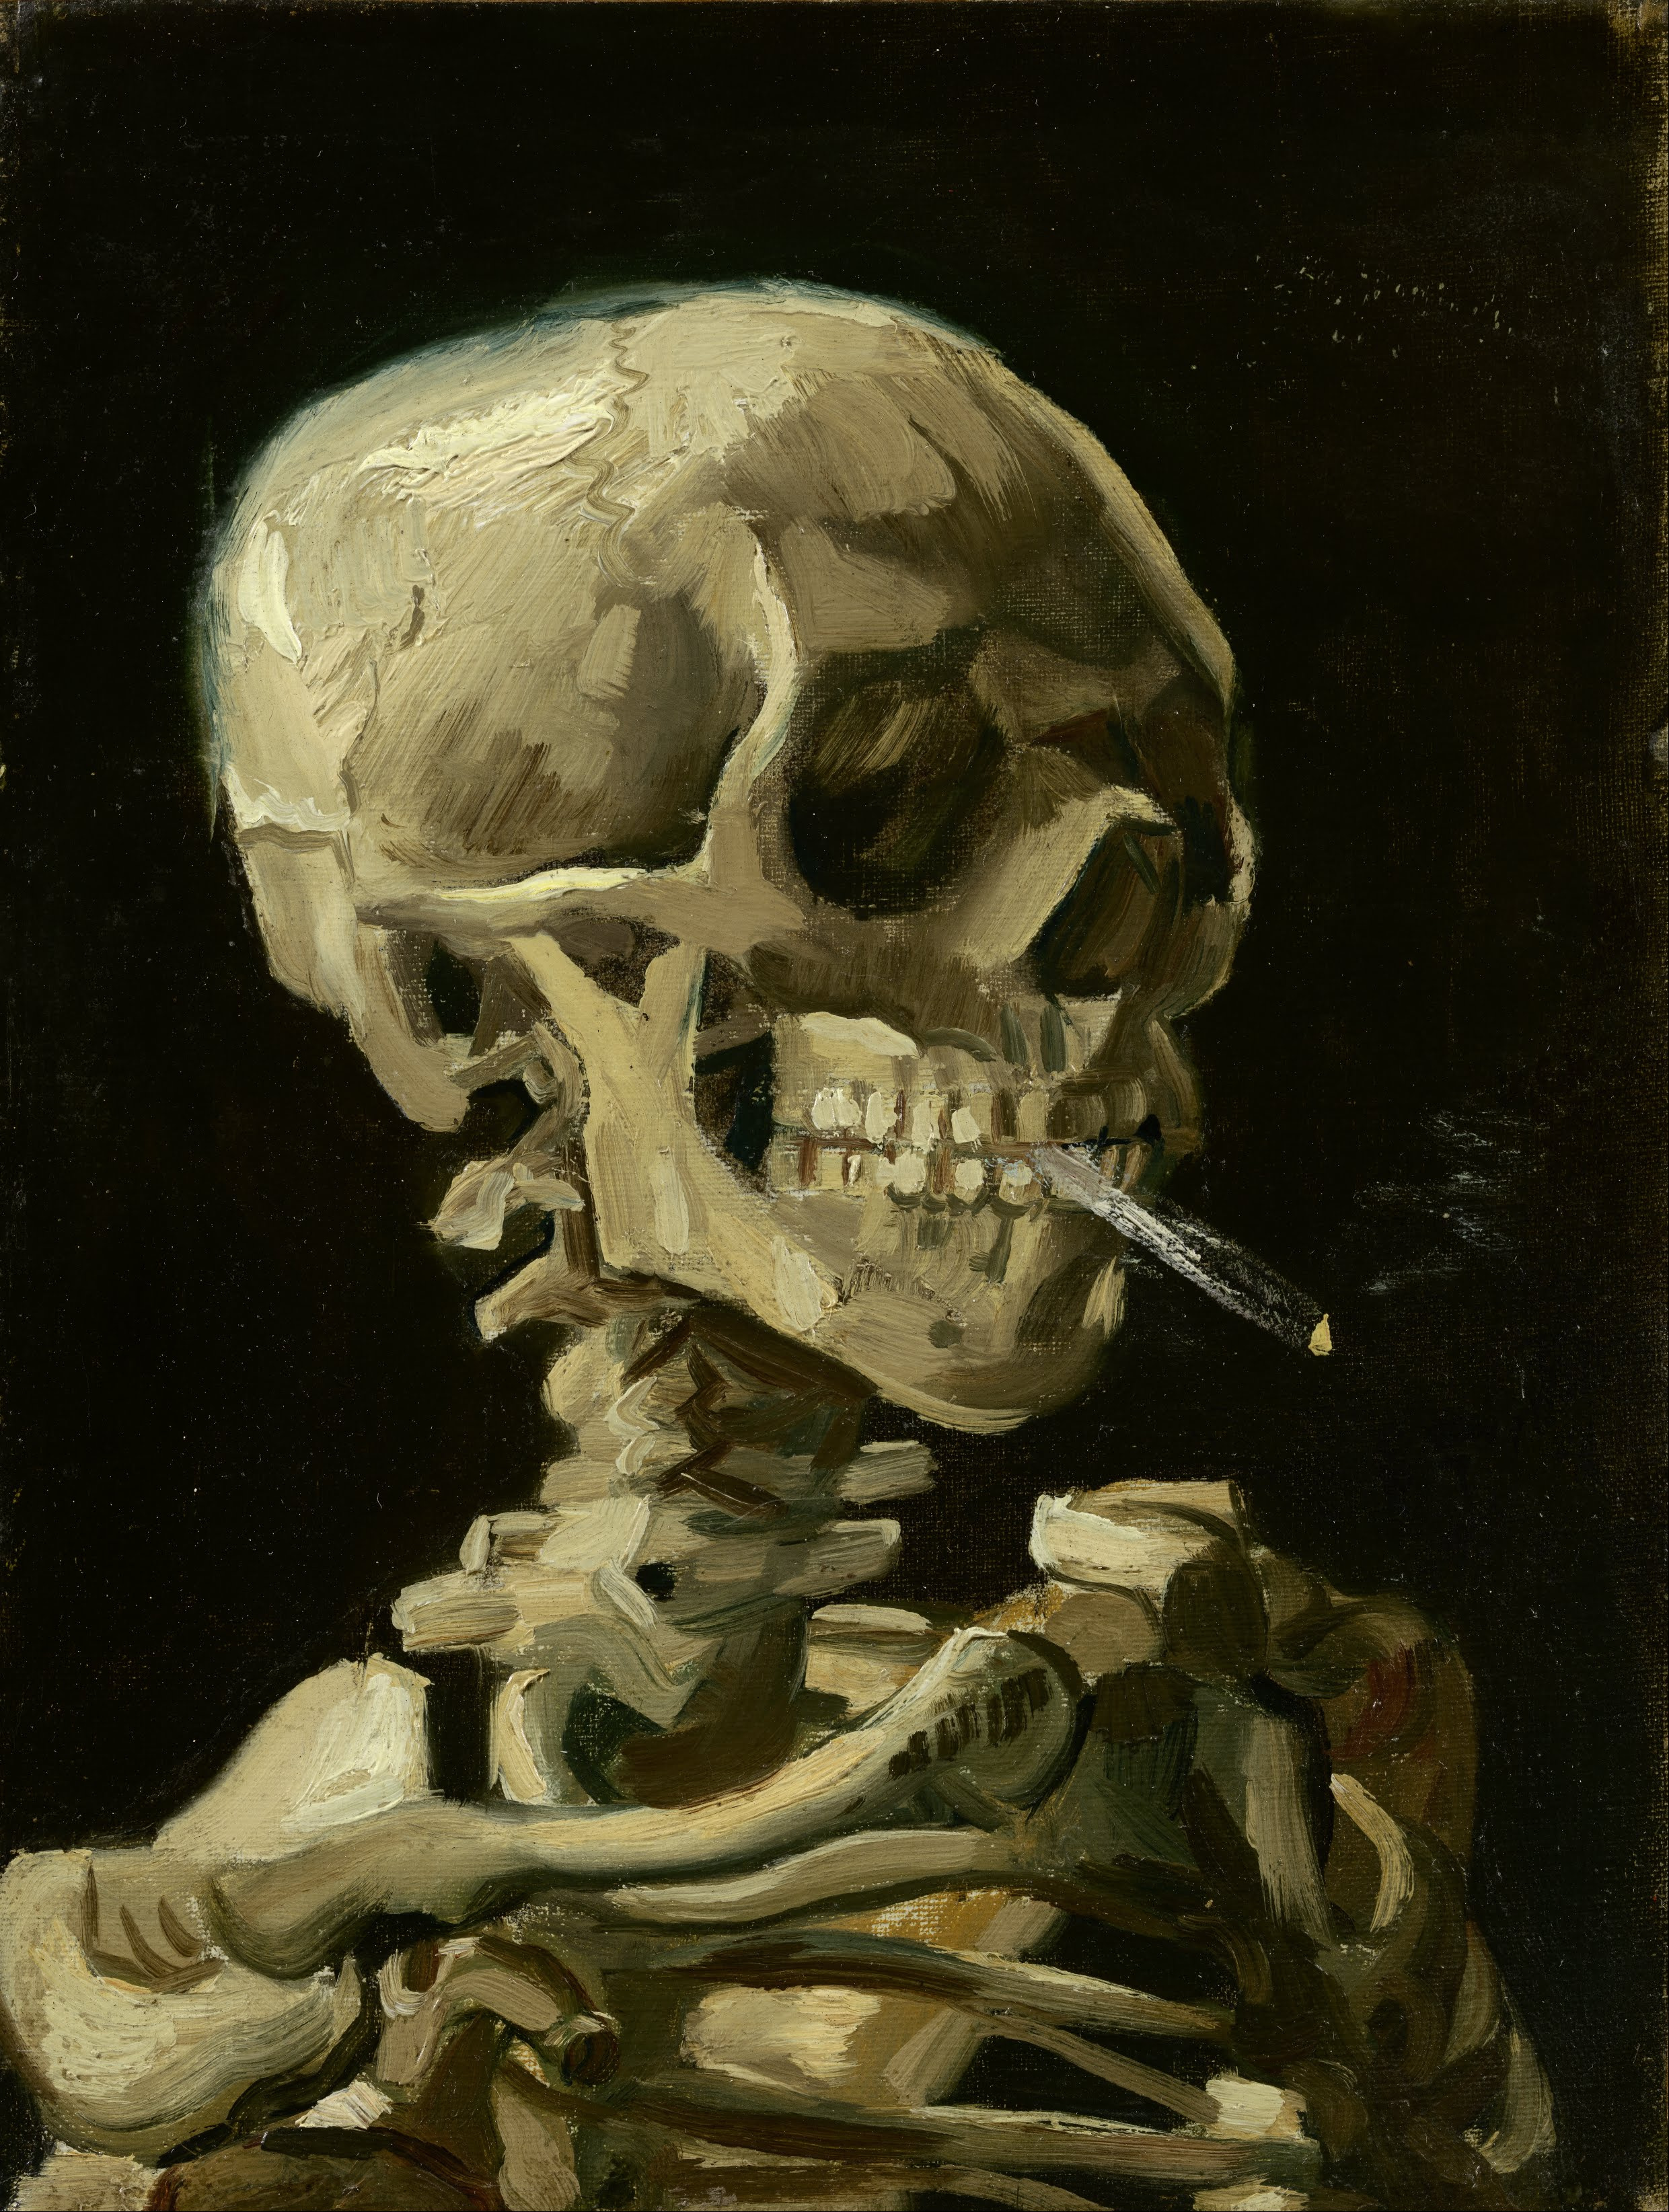 Skull of a Skeleton with Burning Cigarette - Wikipedia